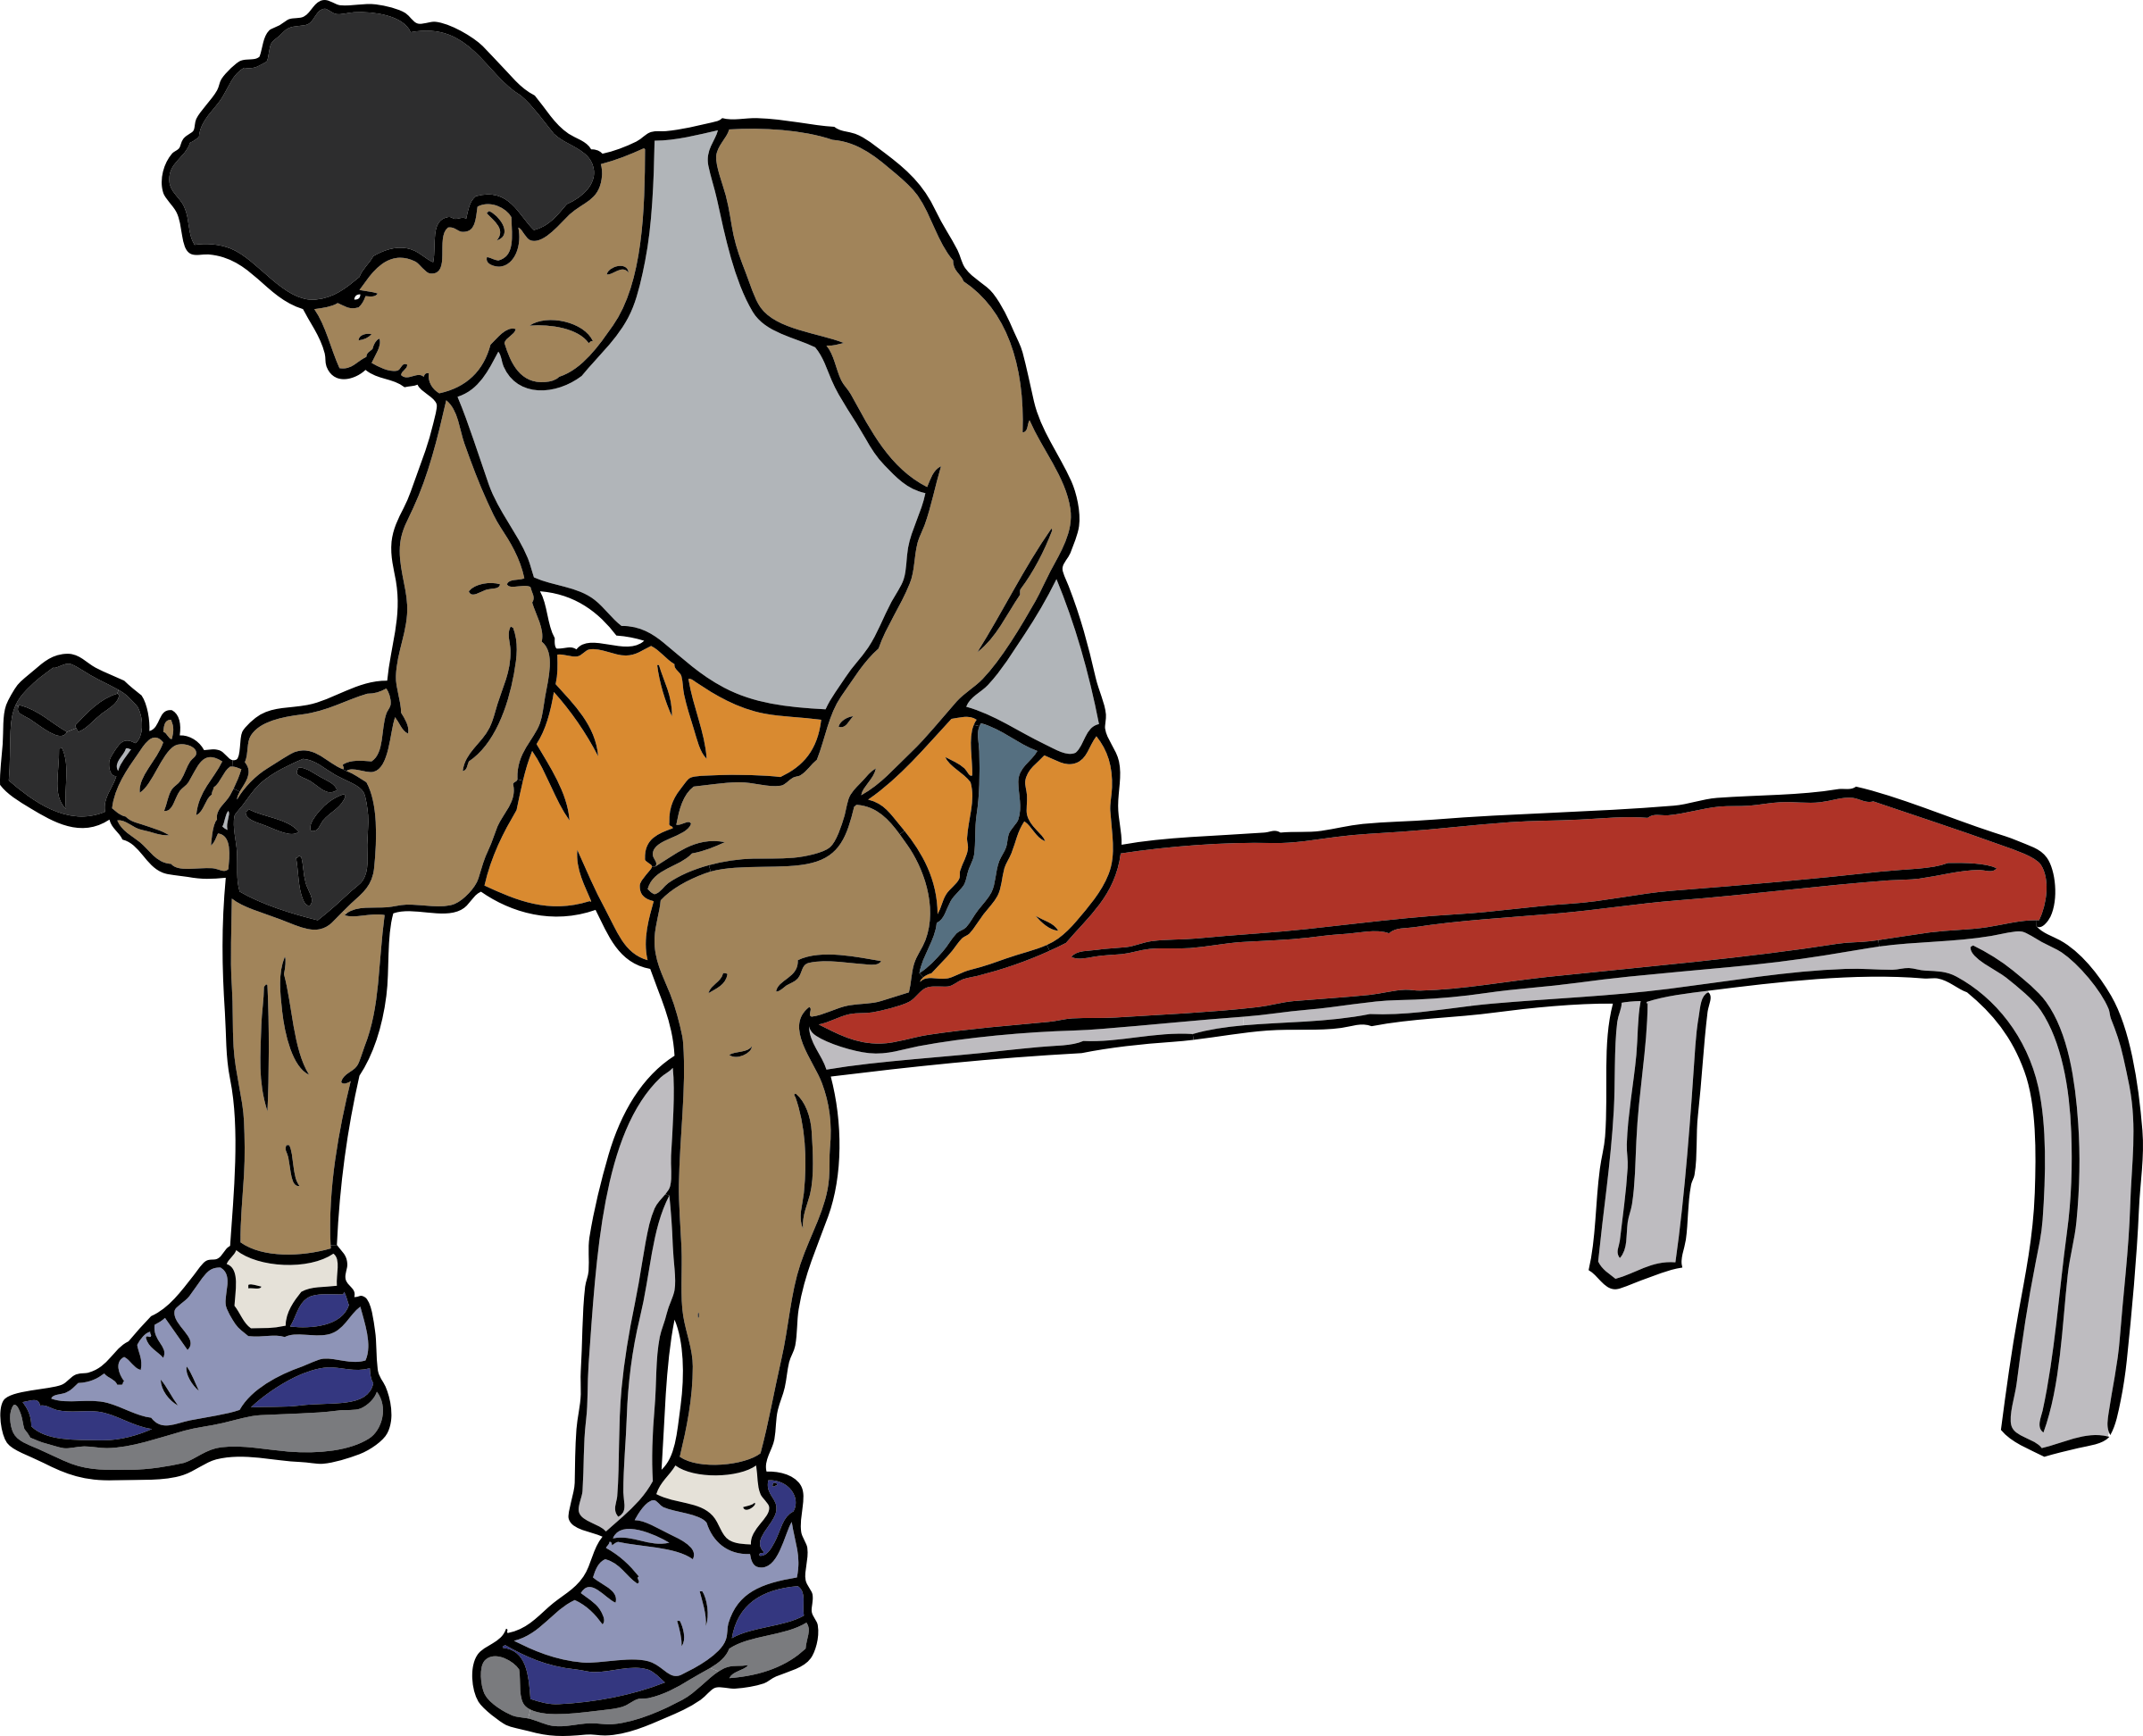 Exercise clipart exercise man. Dumbell lifter big image